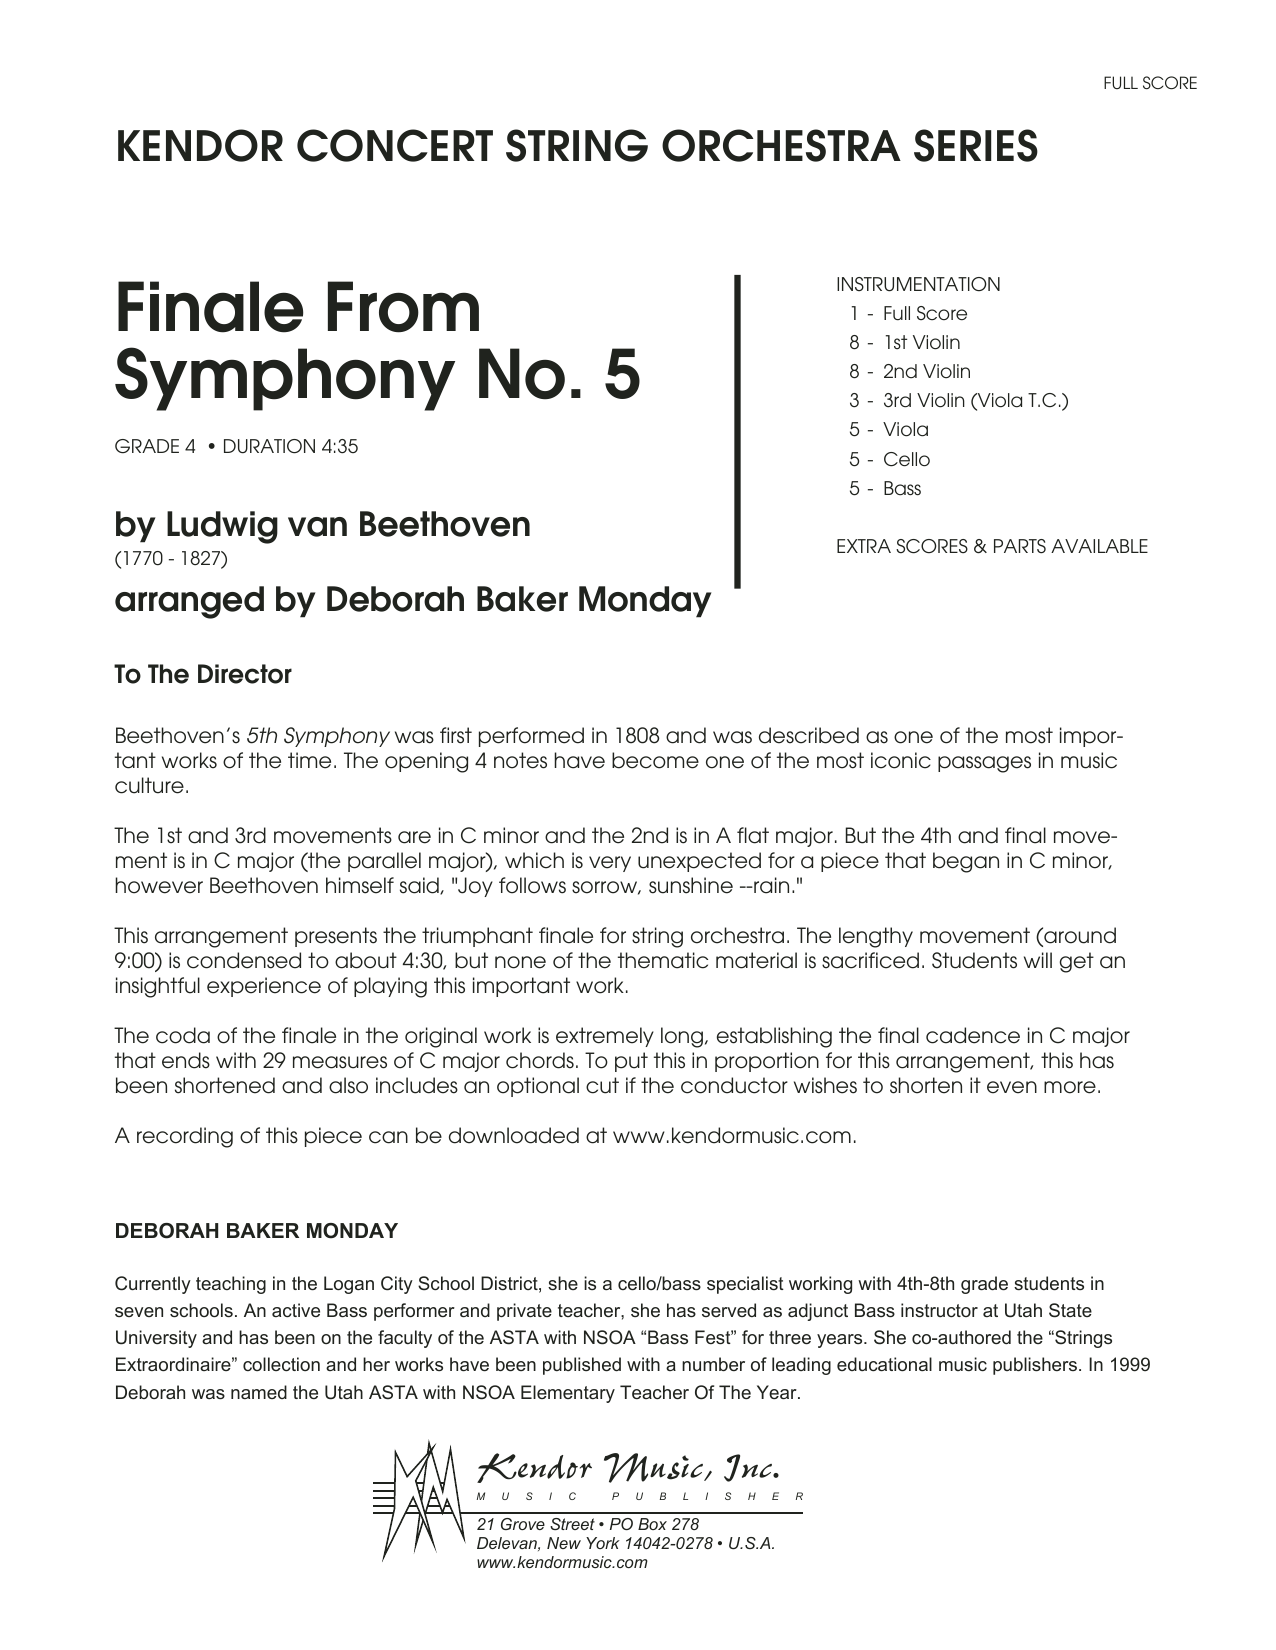 Finale from Symphony No. 5 - Full Score